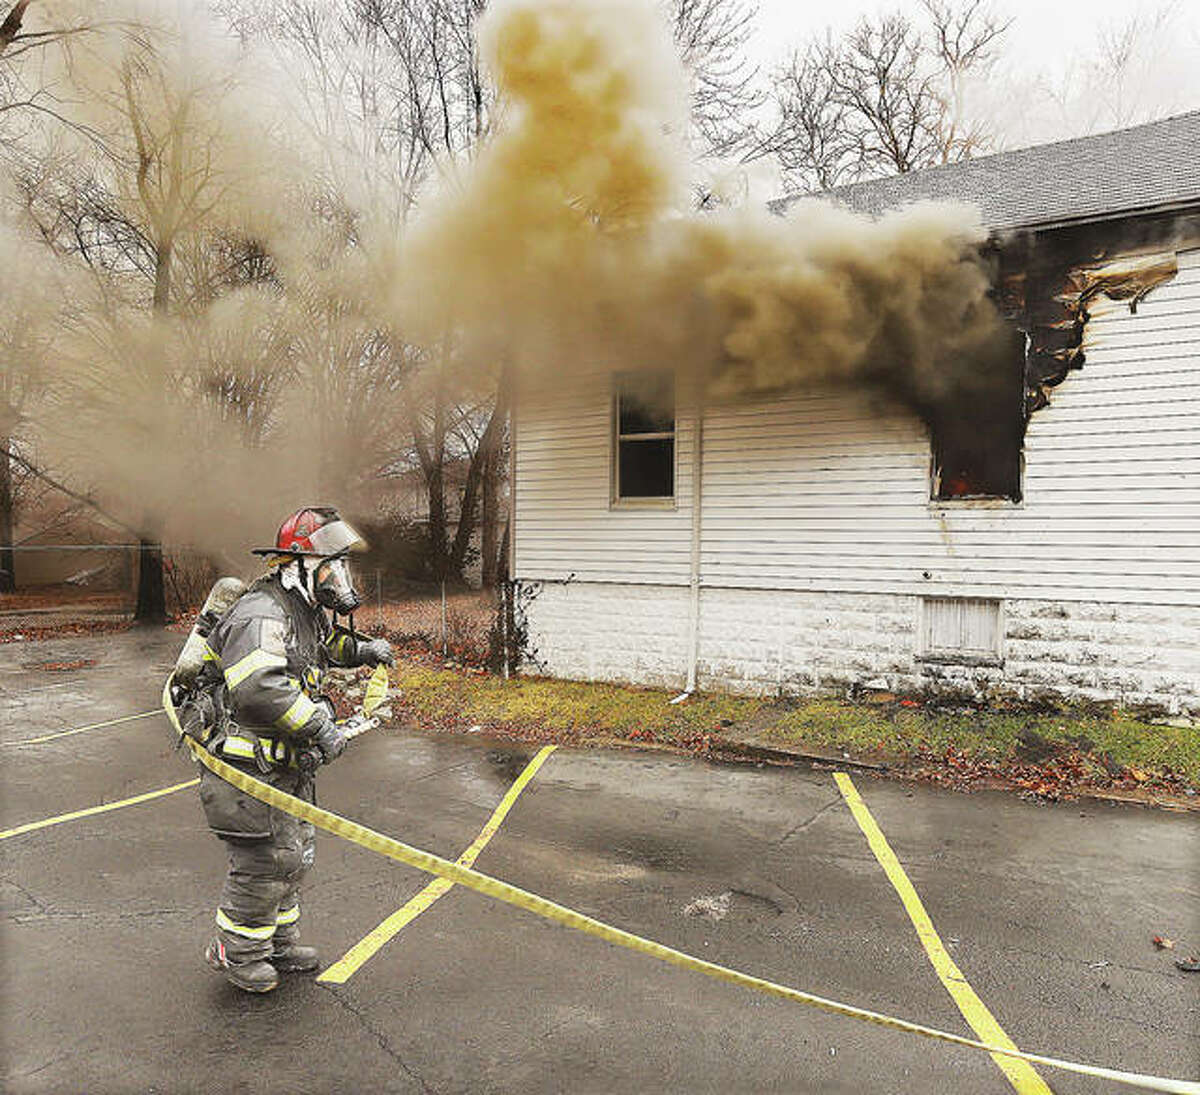 An Alton firefighter pulls a hose line into place at about 12:30 p.m. Tuesday at 1729 Main St., Alton during a fire that extensively damaged the home. Residents of the home escaped unharmed. Alton firefighters called the East Alton Fire Department for assistance. The cause of the fire is under investigation.